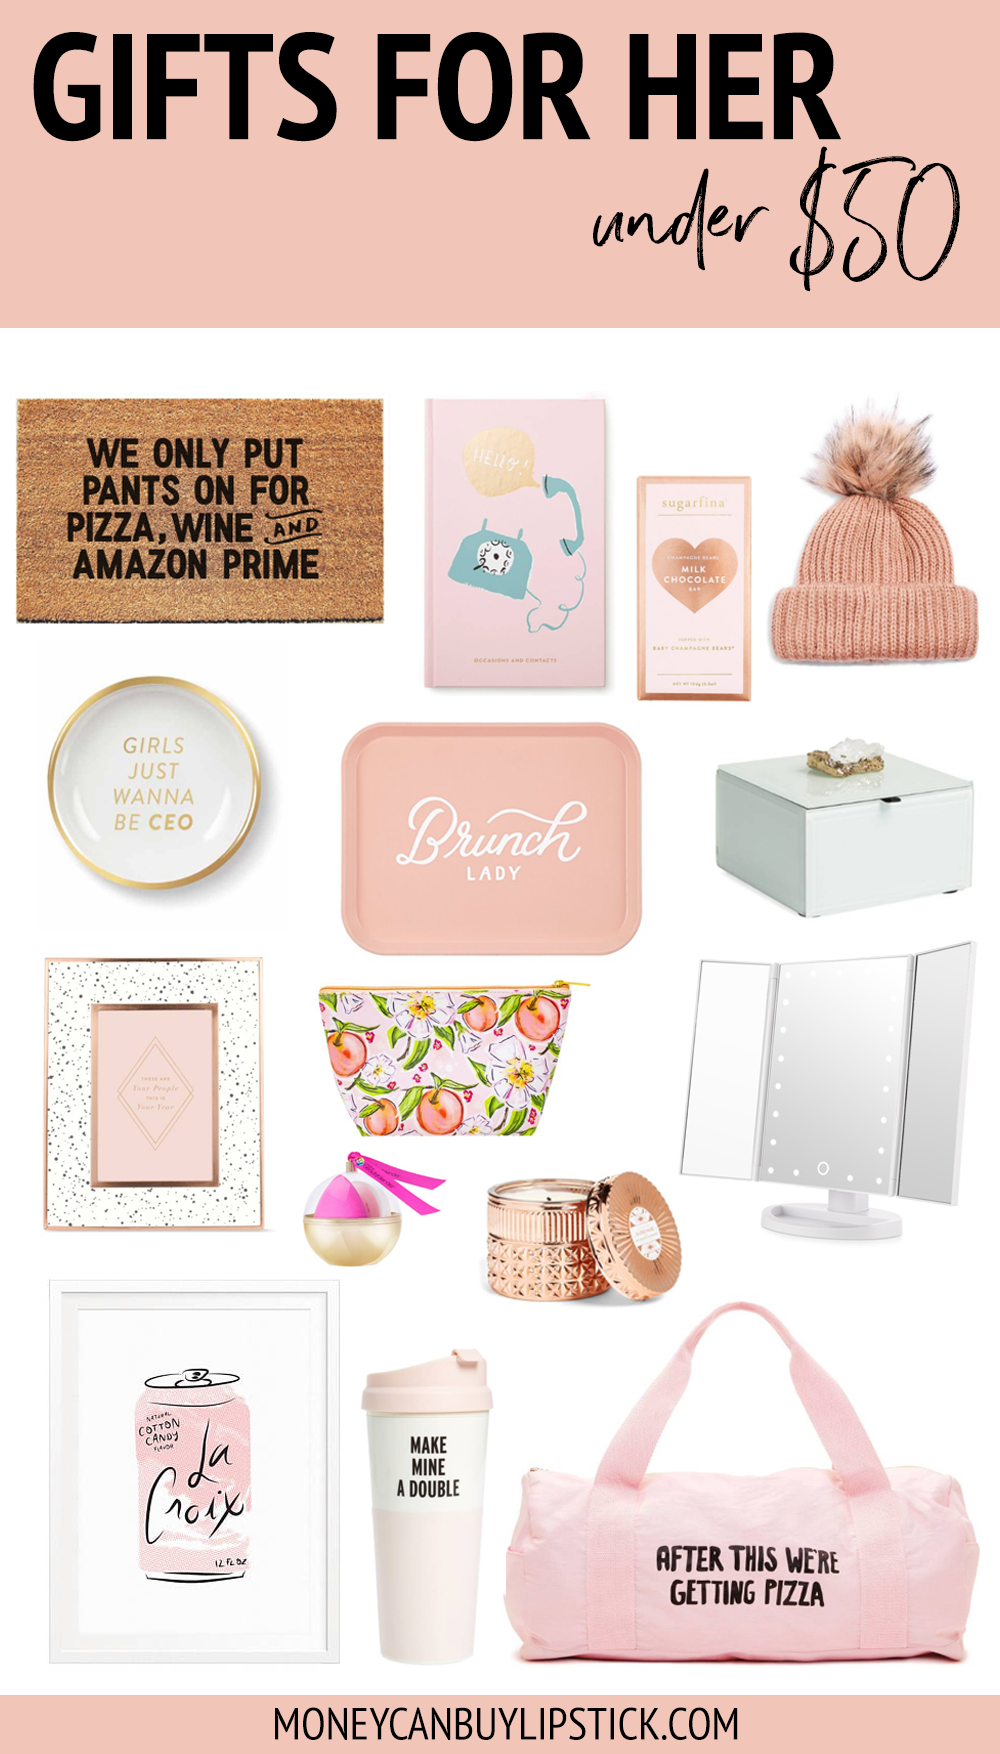 Gifts For Her Holiday Gift Ideas Christmas Gift Ideas Gifts Under 50 Birthday Gifts For Sister Birthday Gifts For Best Friend Christmas Gifts For Girls